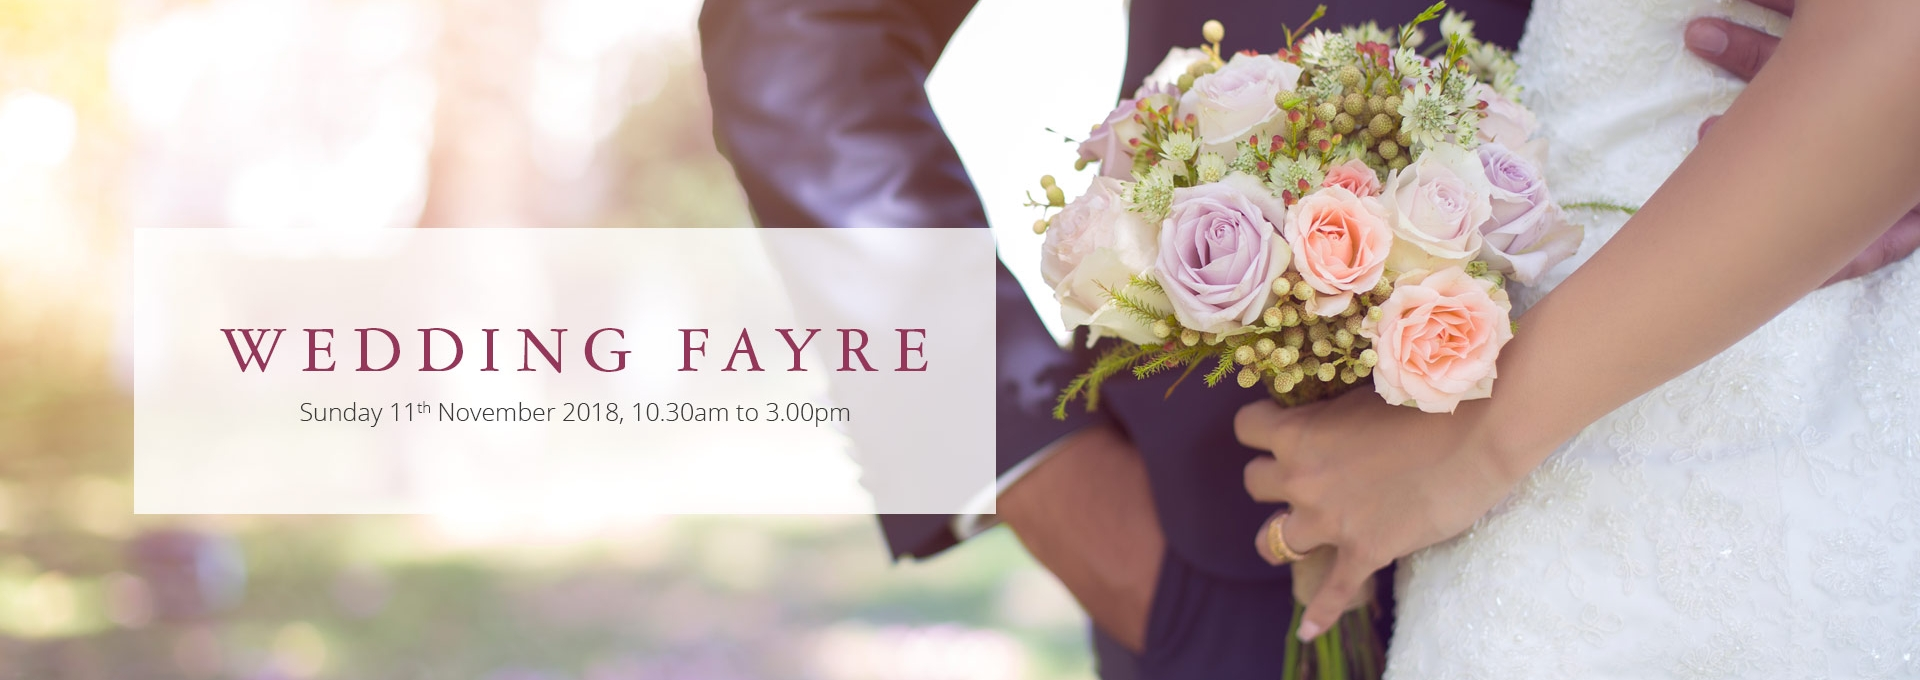 Wedding Fayre at the Durrant House Hotel